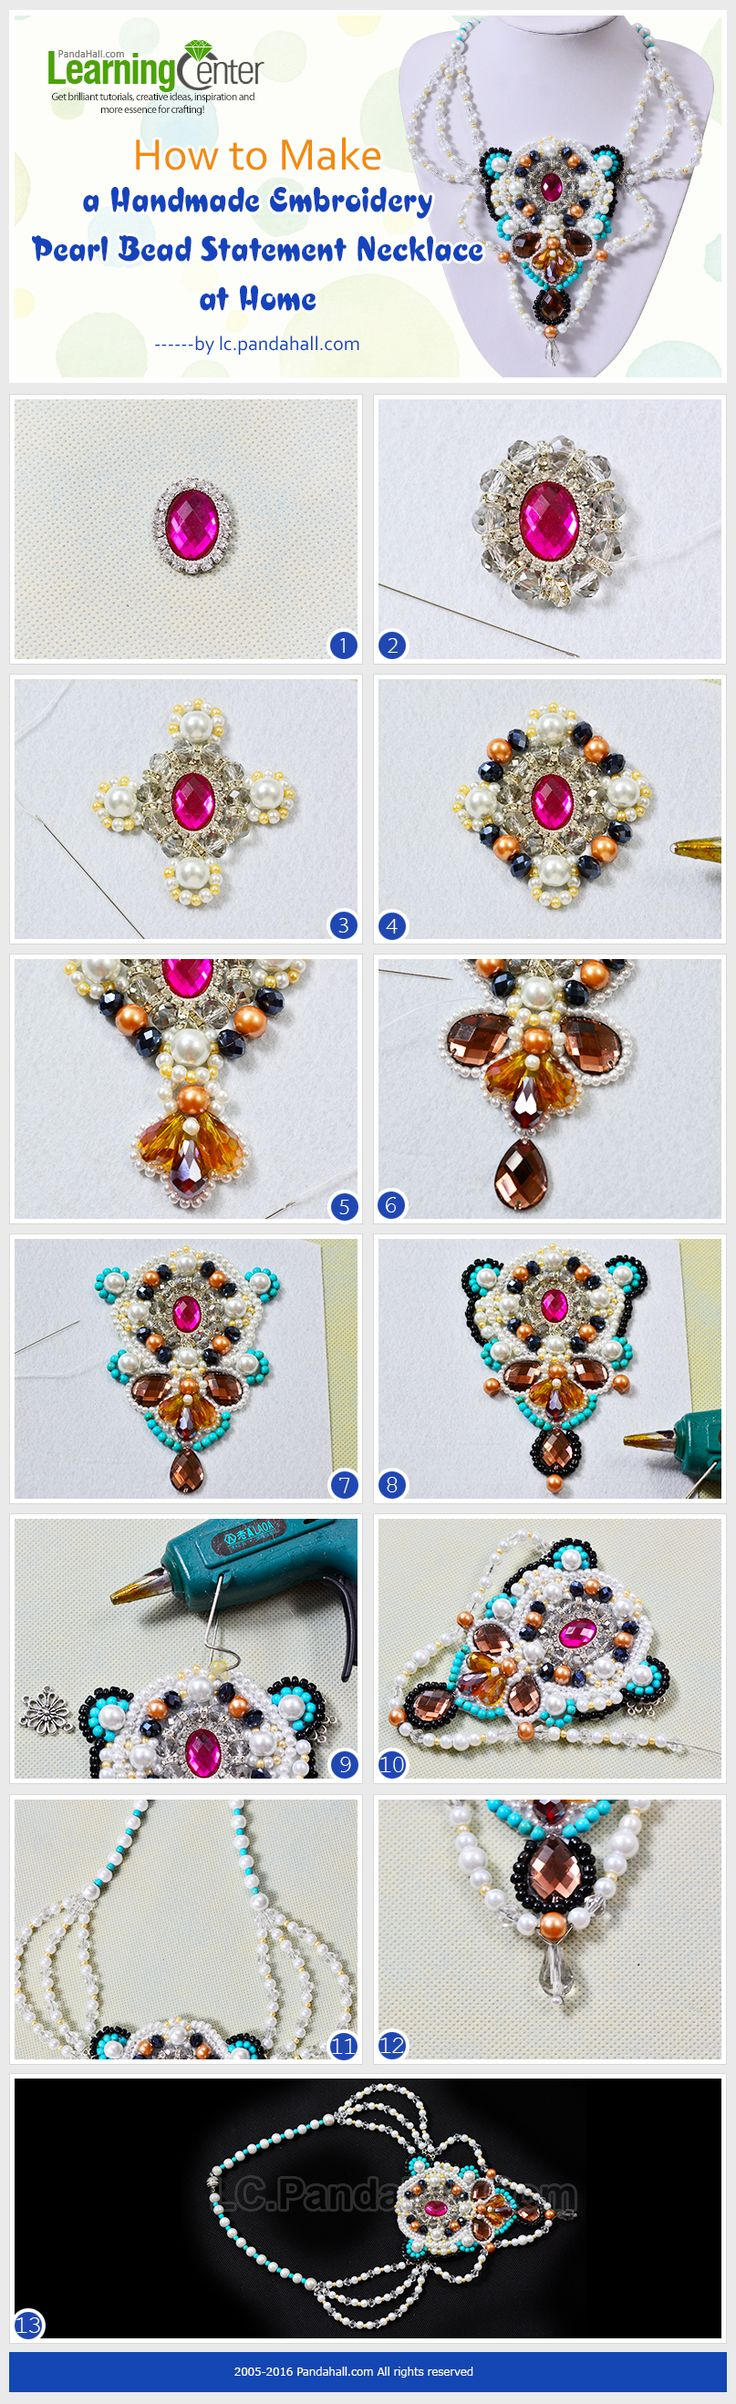 Tutorial on How to Make a Handmade Embroidery Pearl Bead Statement Necklace at Home from LC.Pandahall.com   #pandahall